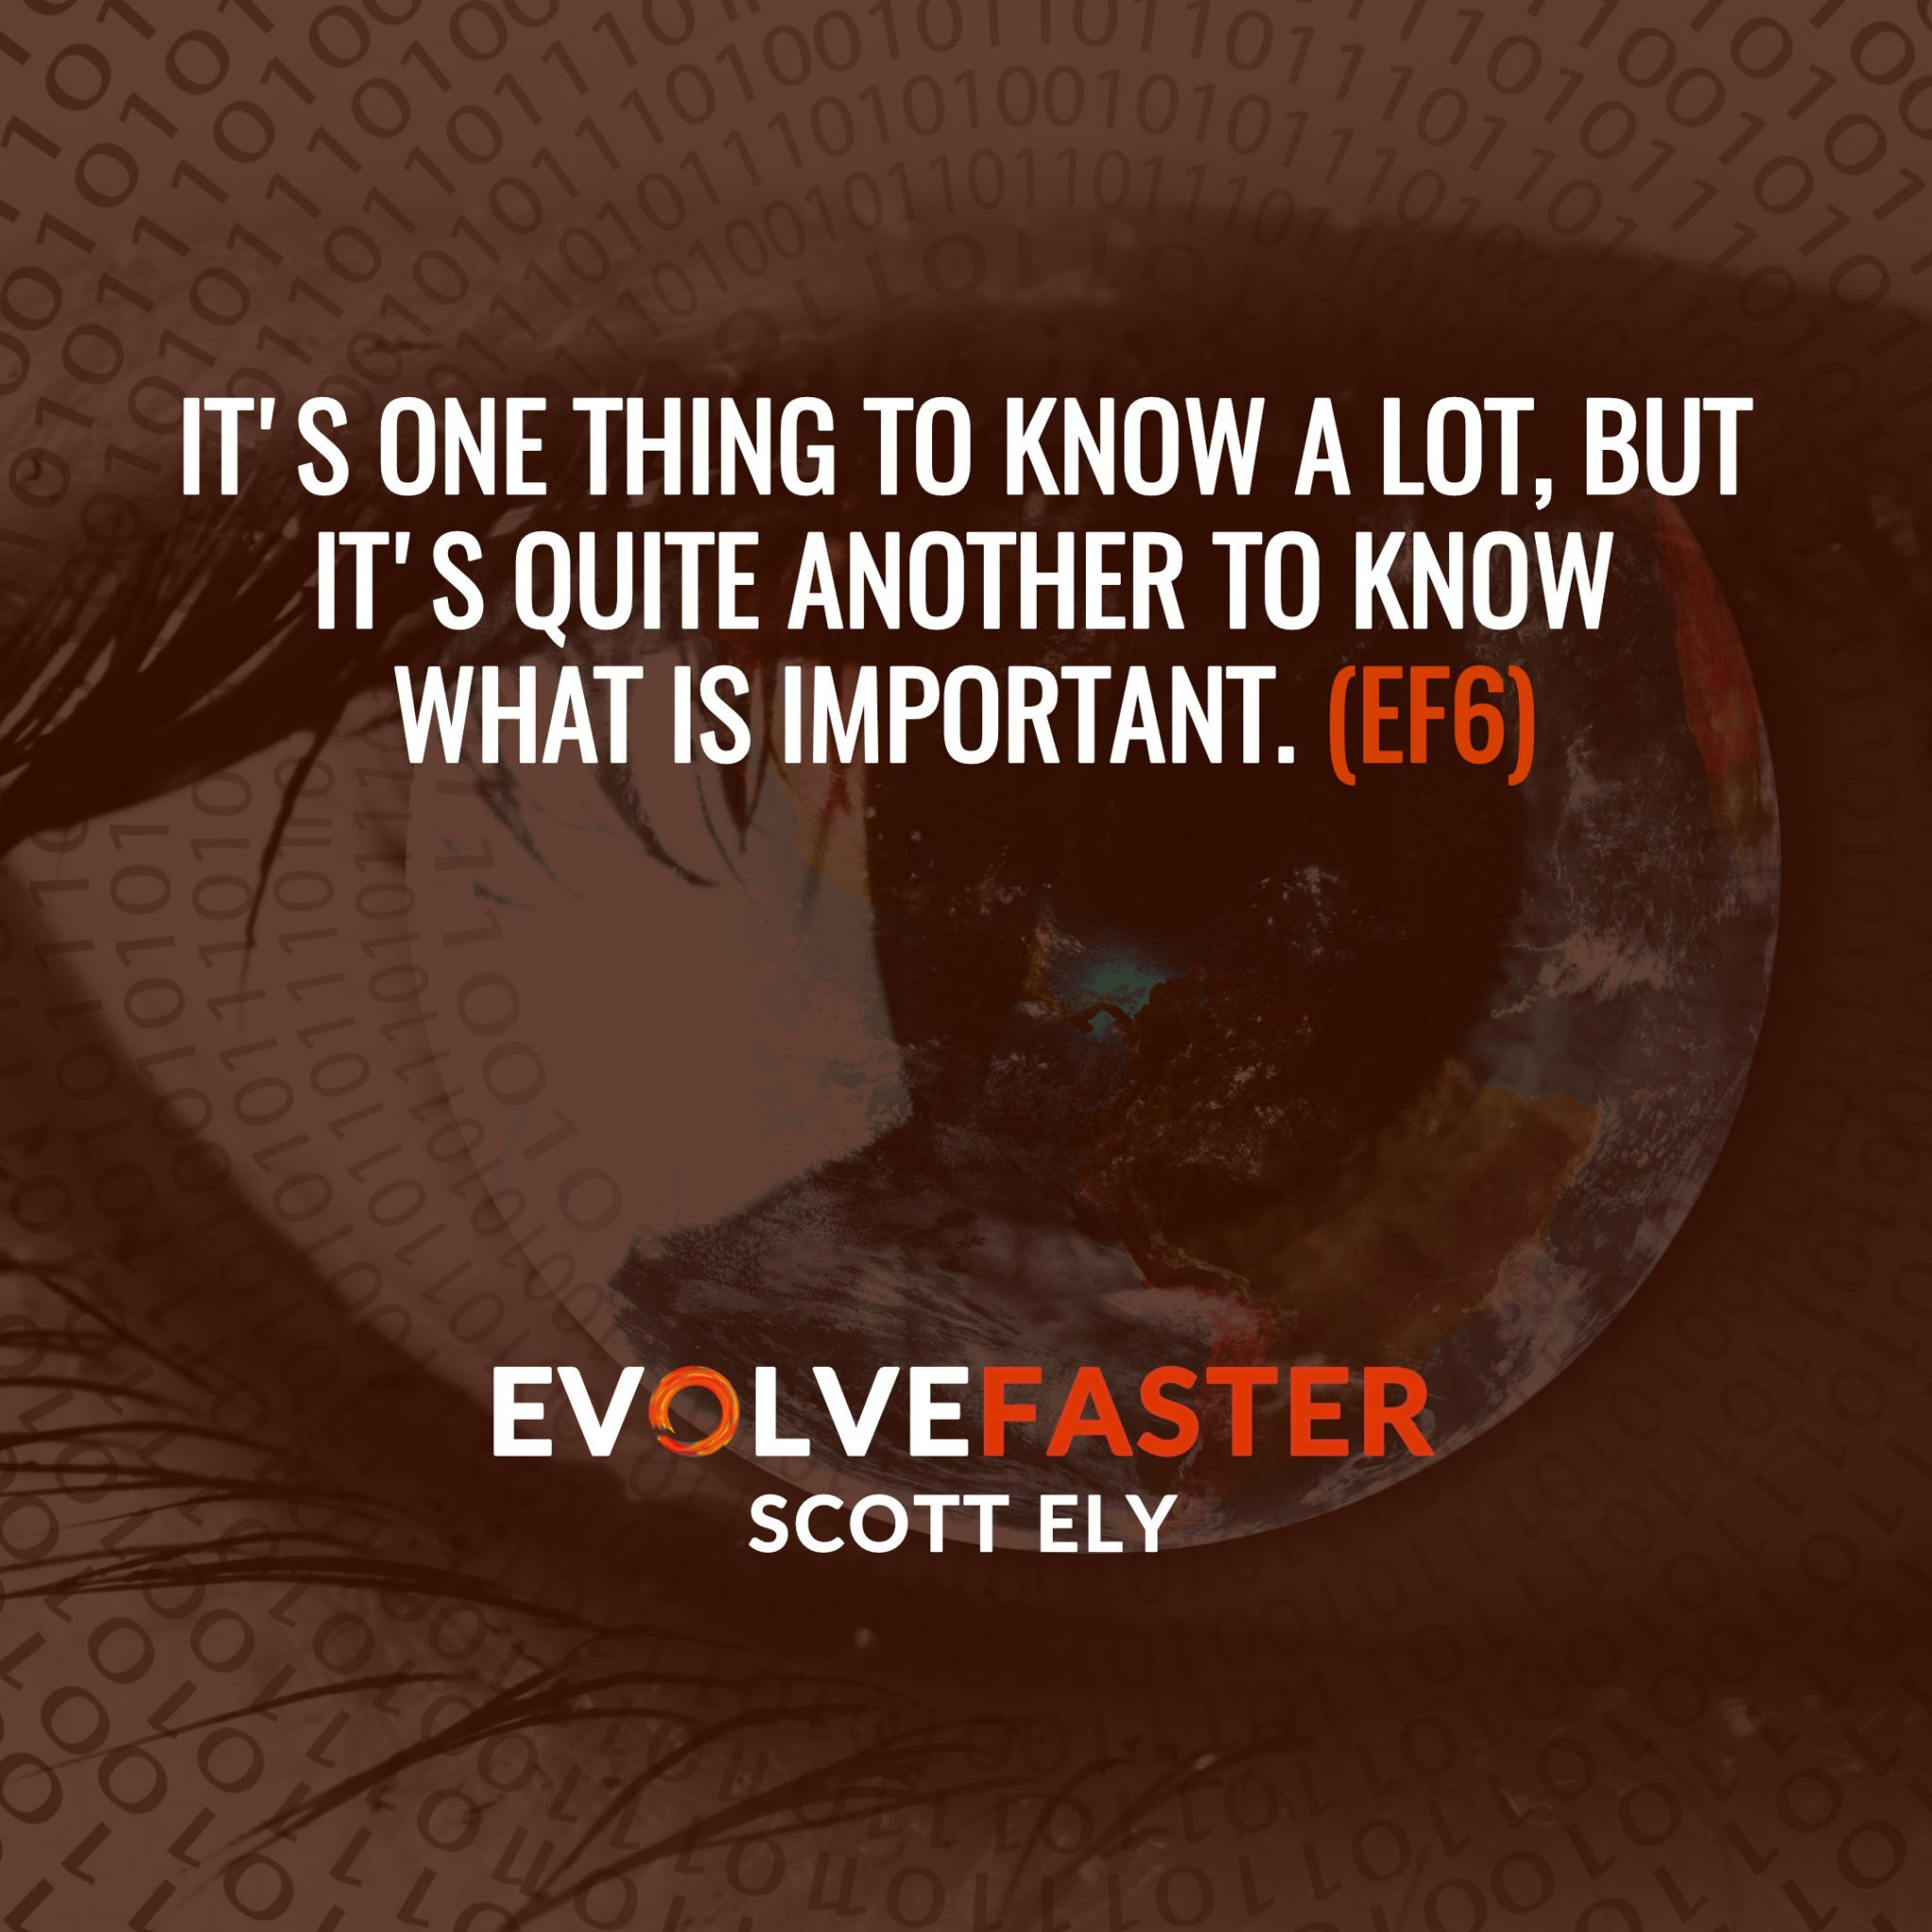 (EF6) S1-E4: Information Mainlining and the Folly of Modern Wisdom The Evolve Faster Podcast with Scott Ely Season One